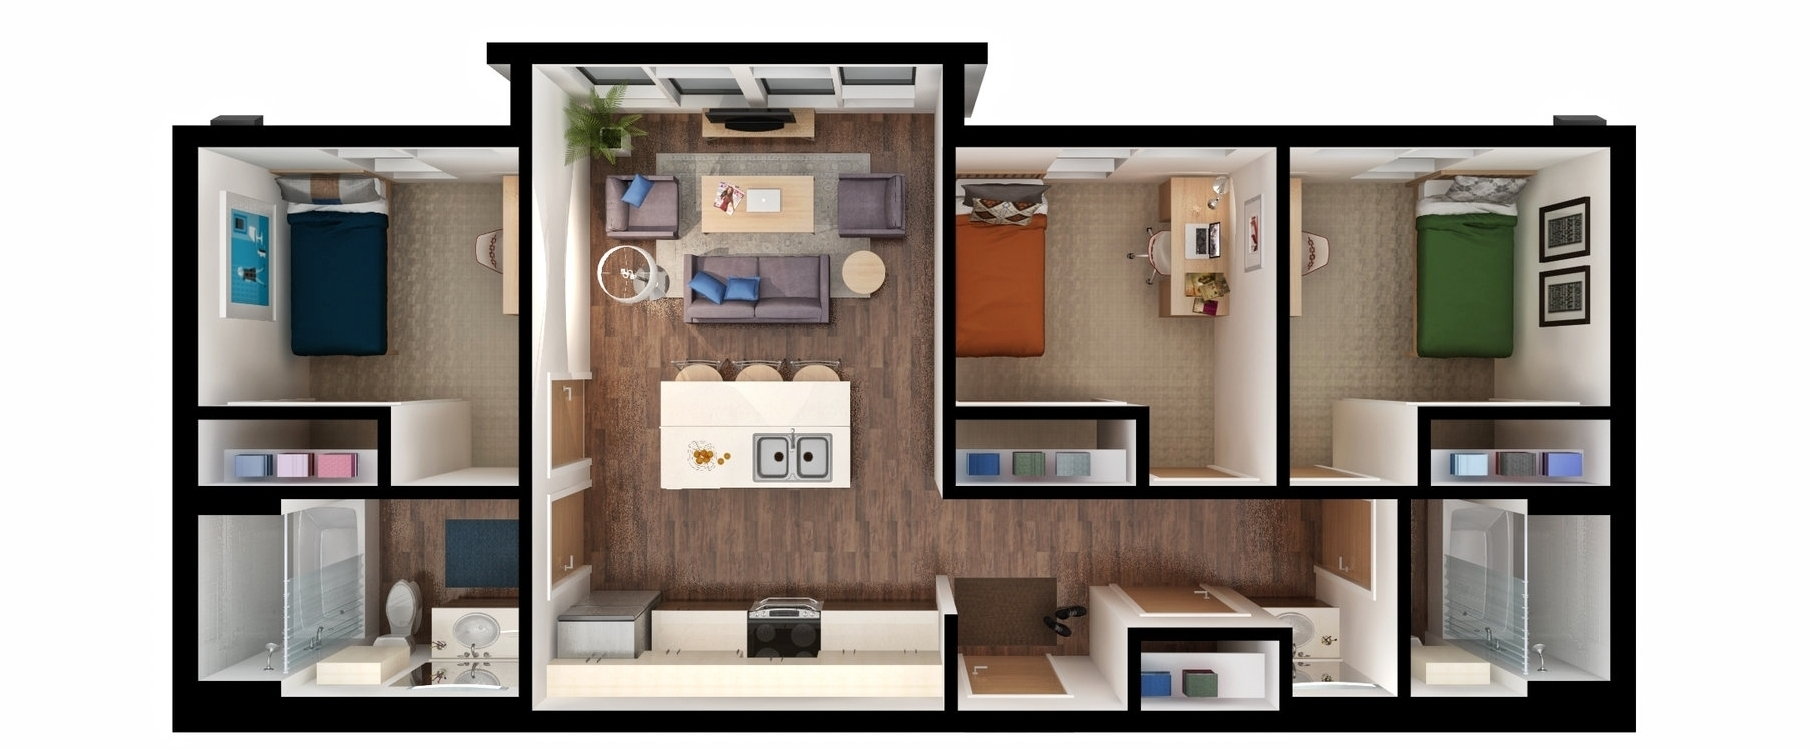 Three bedroom unit rendering